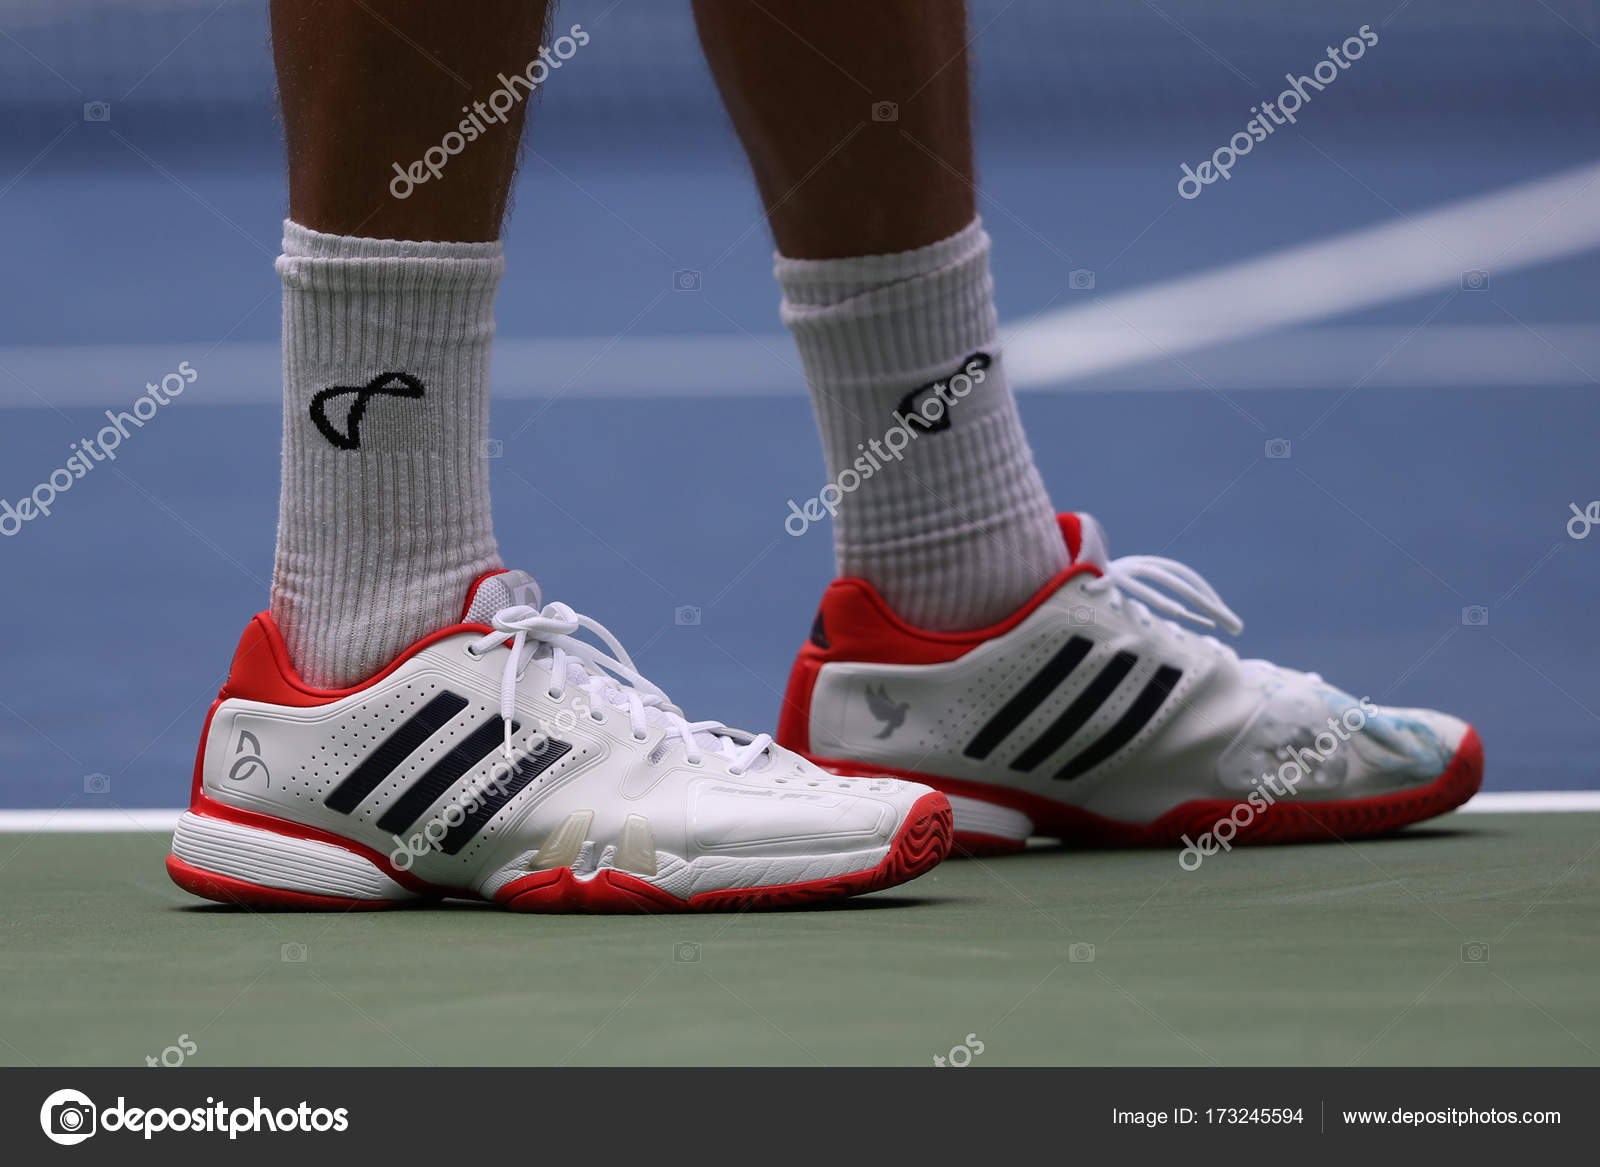 Professional Tennis Player Tennys Sandgren Of Usa Wears Adidas Special Edition Babolat 7 Novak Djokovic Tennis Shoes During His 2017 Us Open First Round Match Stock Editorial Photo C Zhukovsky 173245594